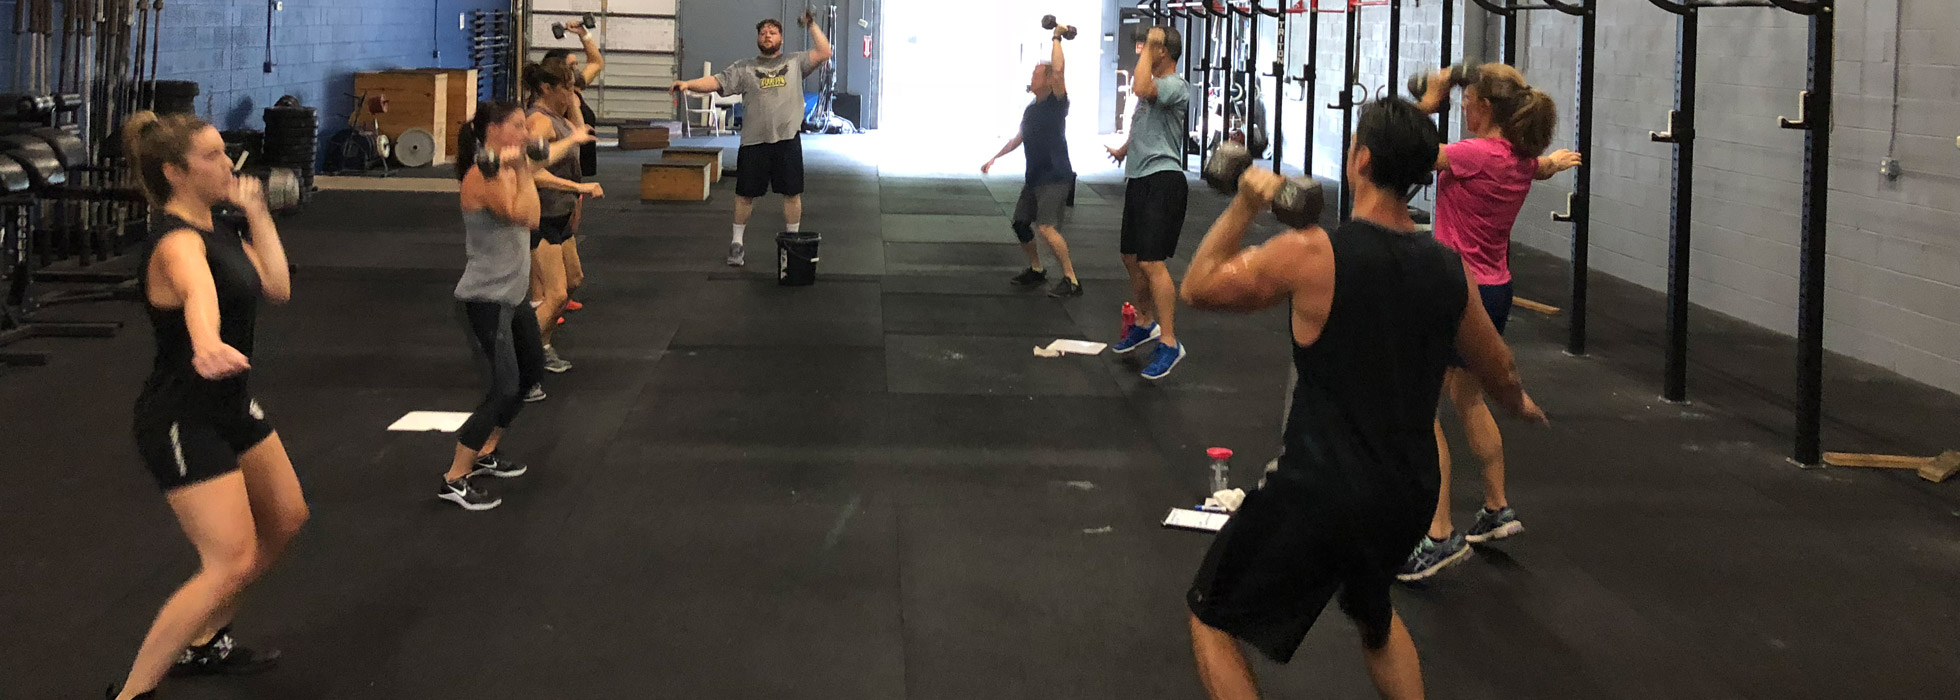 Beginners CrossFit Classes in Woodstock GA, Beginners CrossFit Classes near Atlanta GA, Beginners CrossFit Classes near Kennesaw GA, Beginners CrossFit Classes near Marietta GA